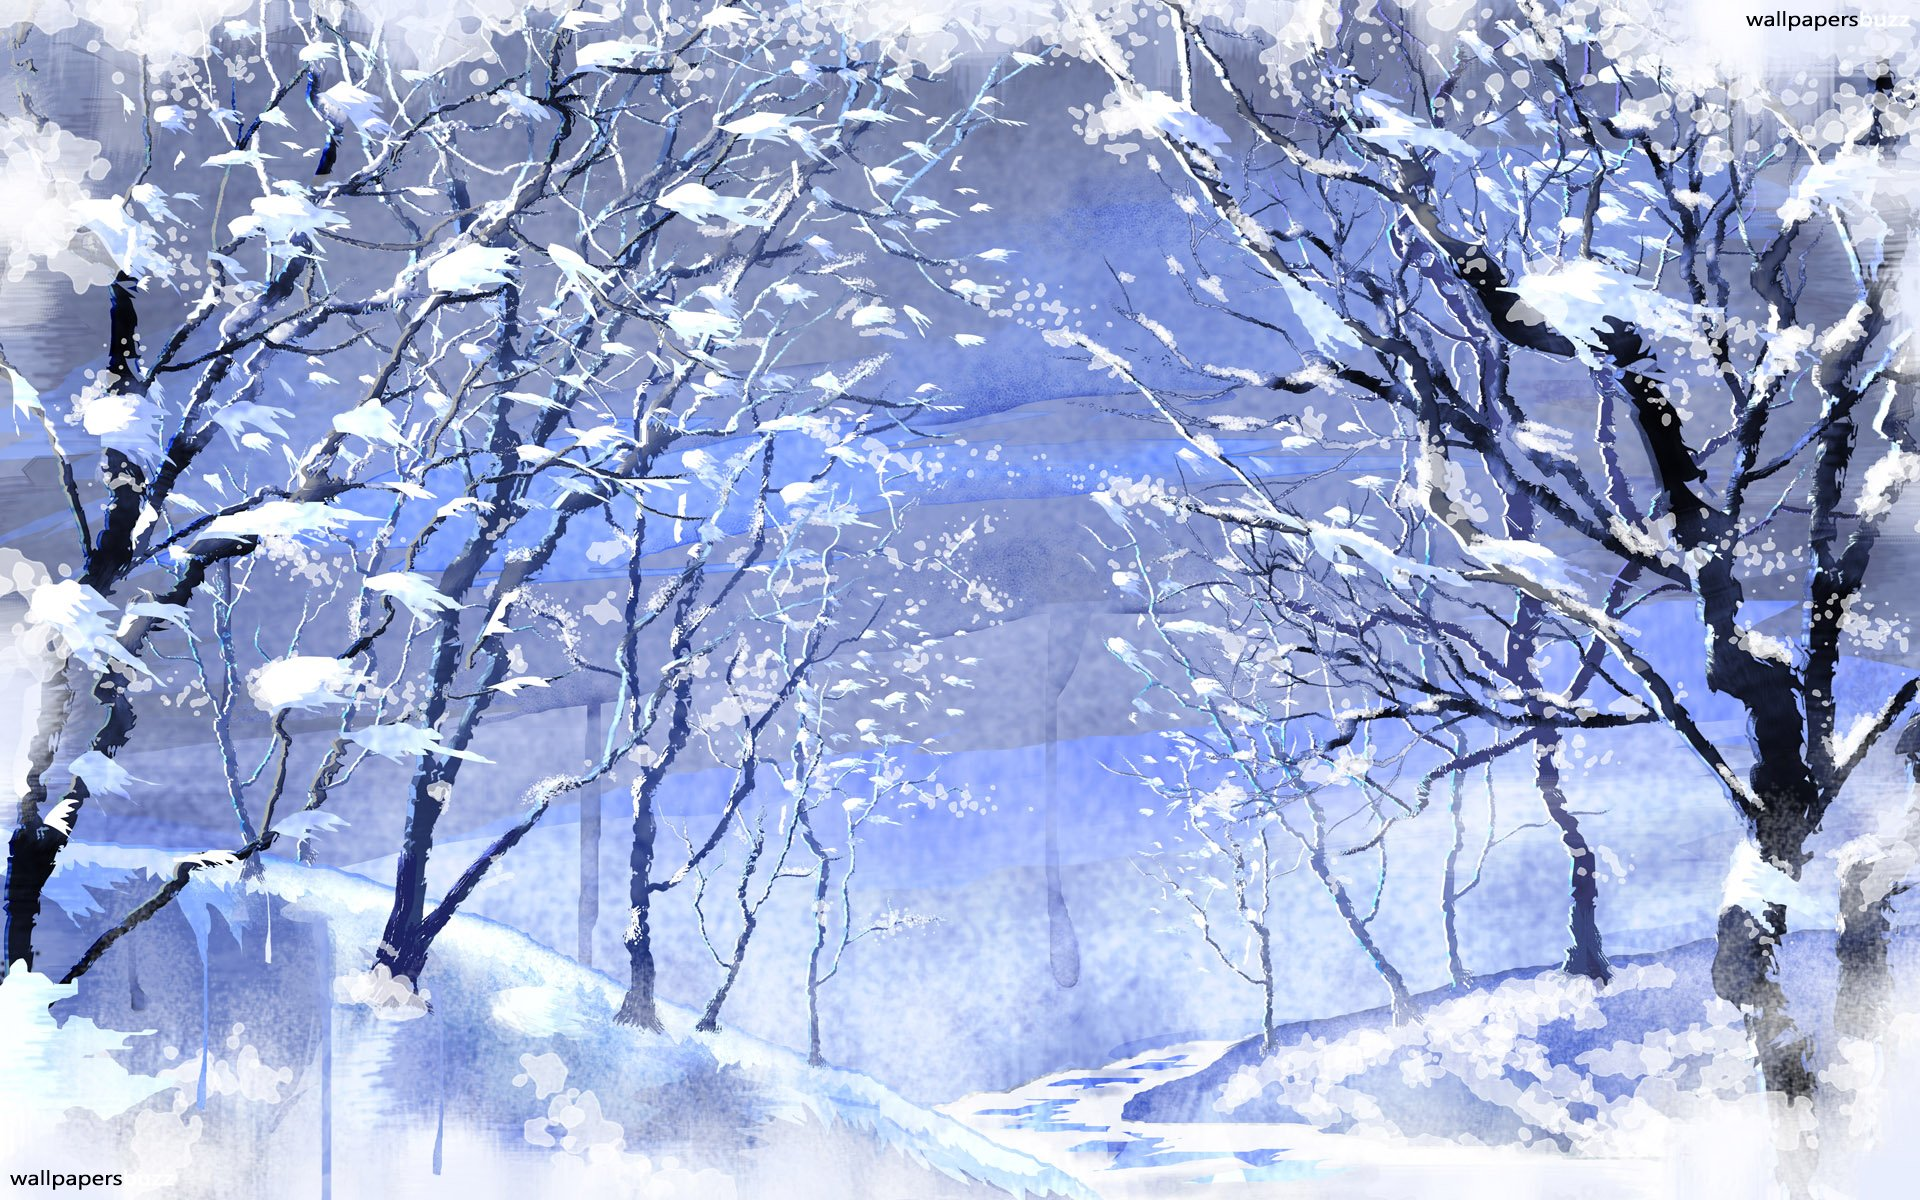 Snow wallpapers HD download